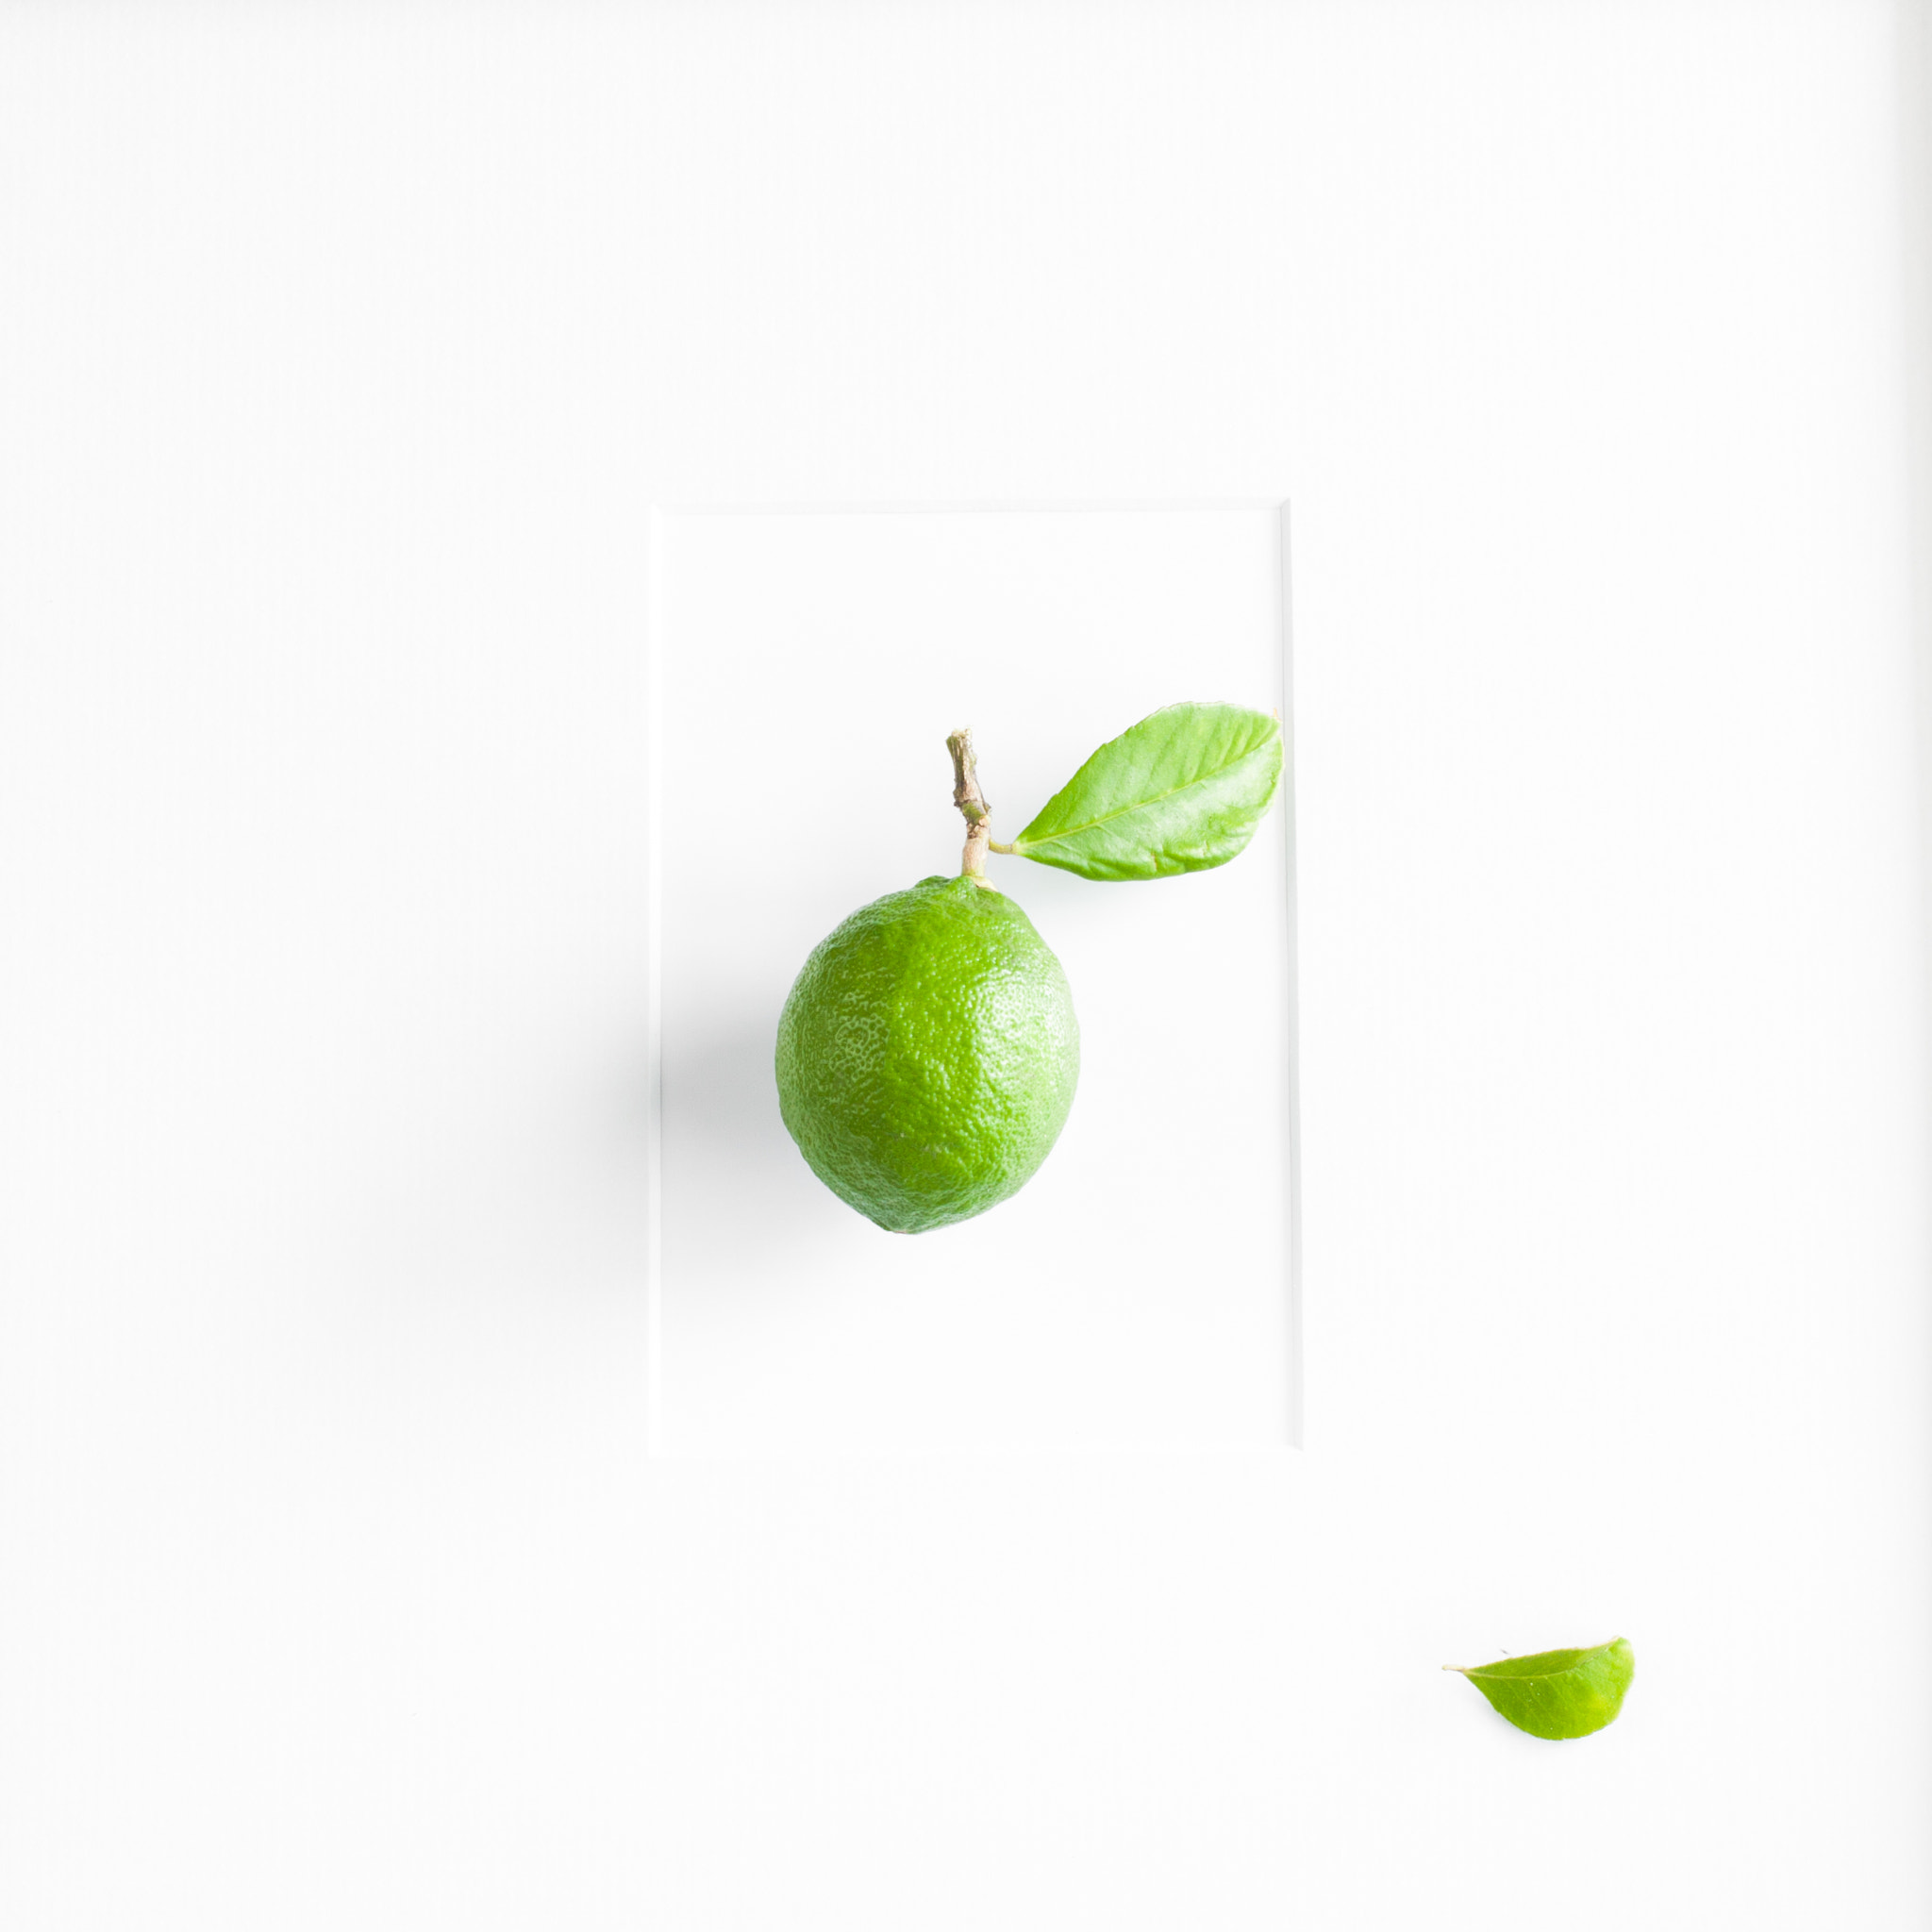 Photograph A Green Lemon - Framed by Constance Fein Harding on 500px